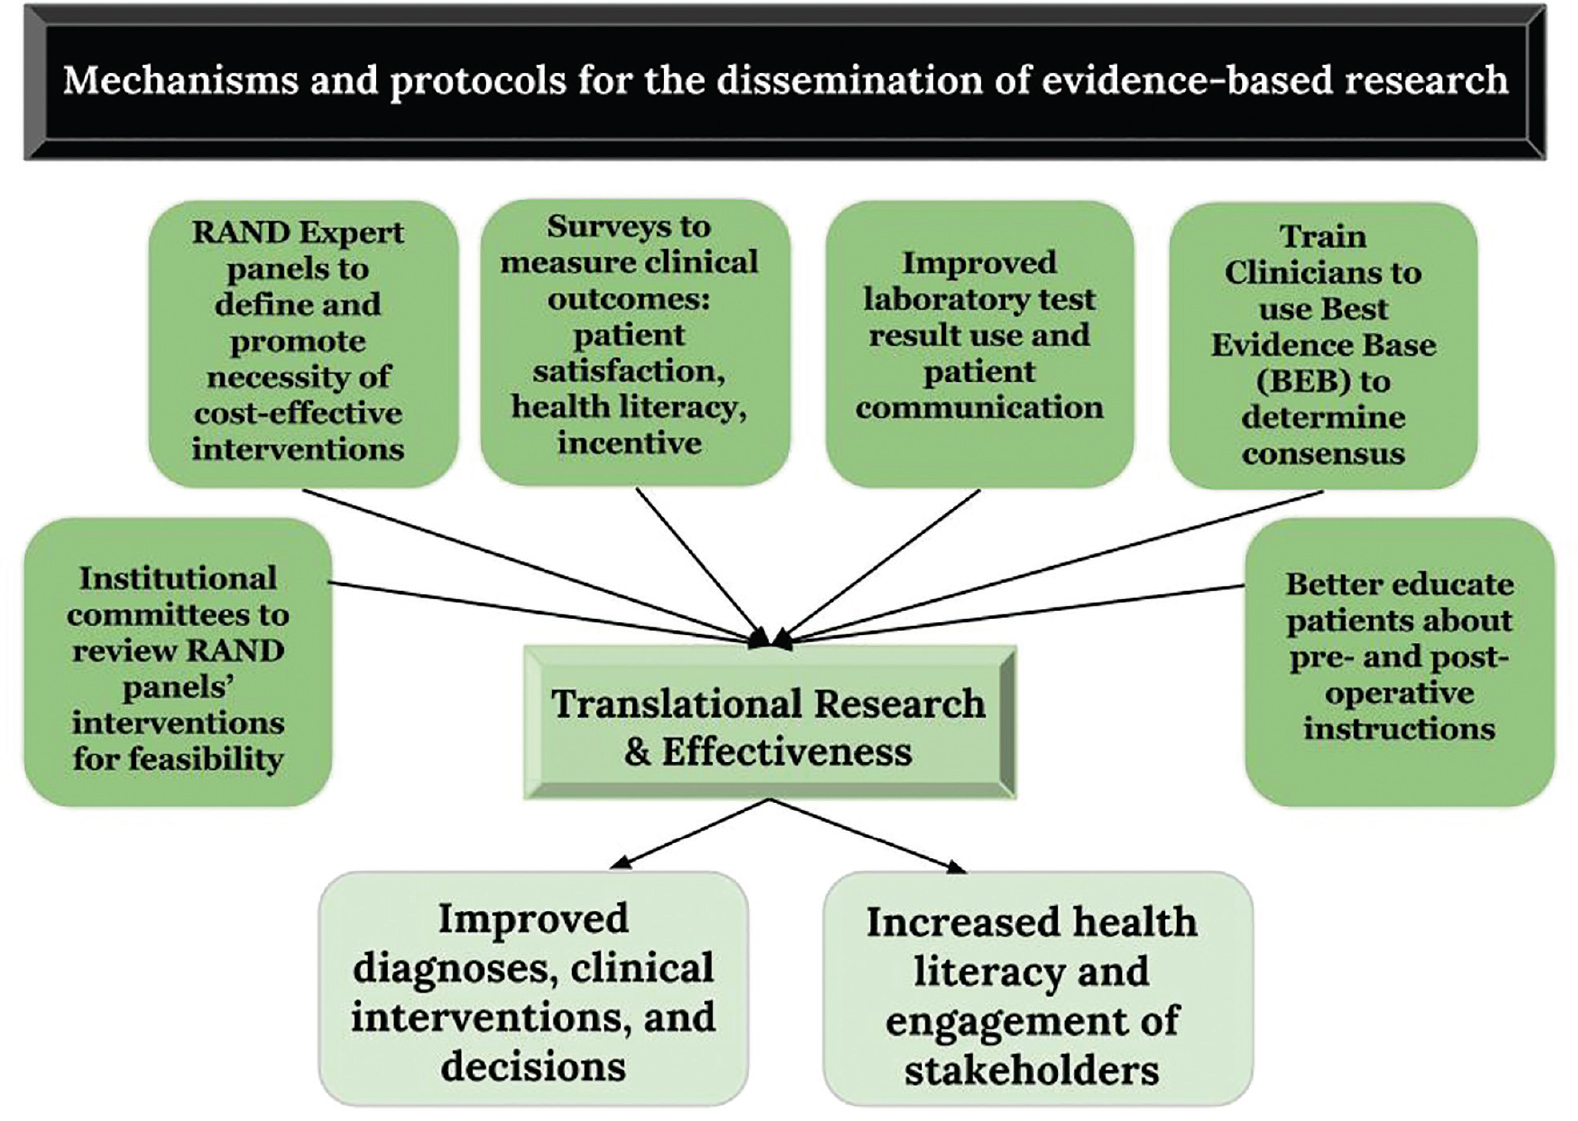 Figure 3: Dissemination and Utilization of Research Results [Moura <i>et al</i>. 2013] The following mechanisms and protocols were discussed in relation to their potential to improve dissemination and utilization of the best available evidence